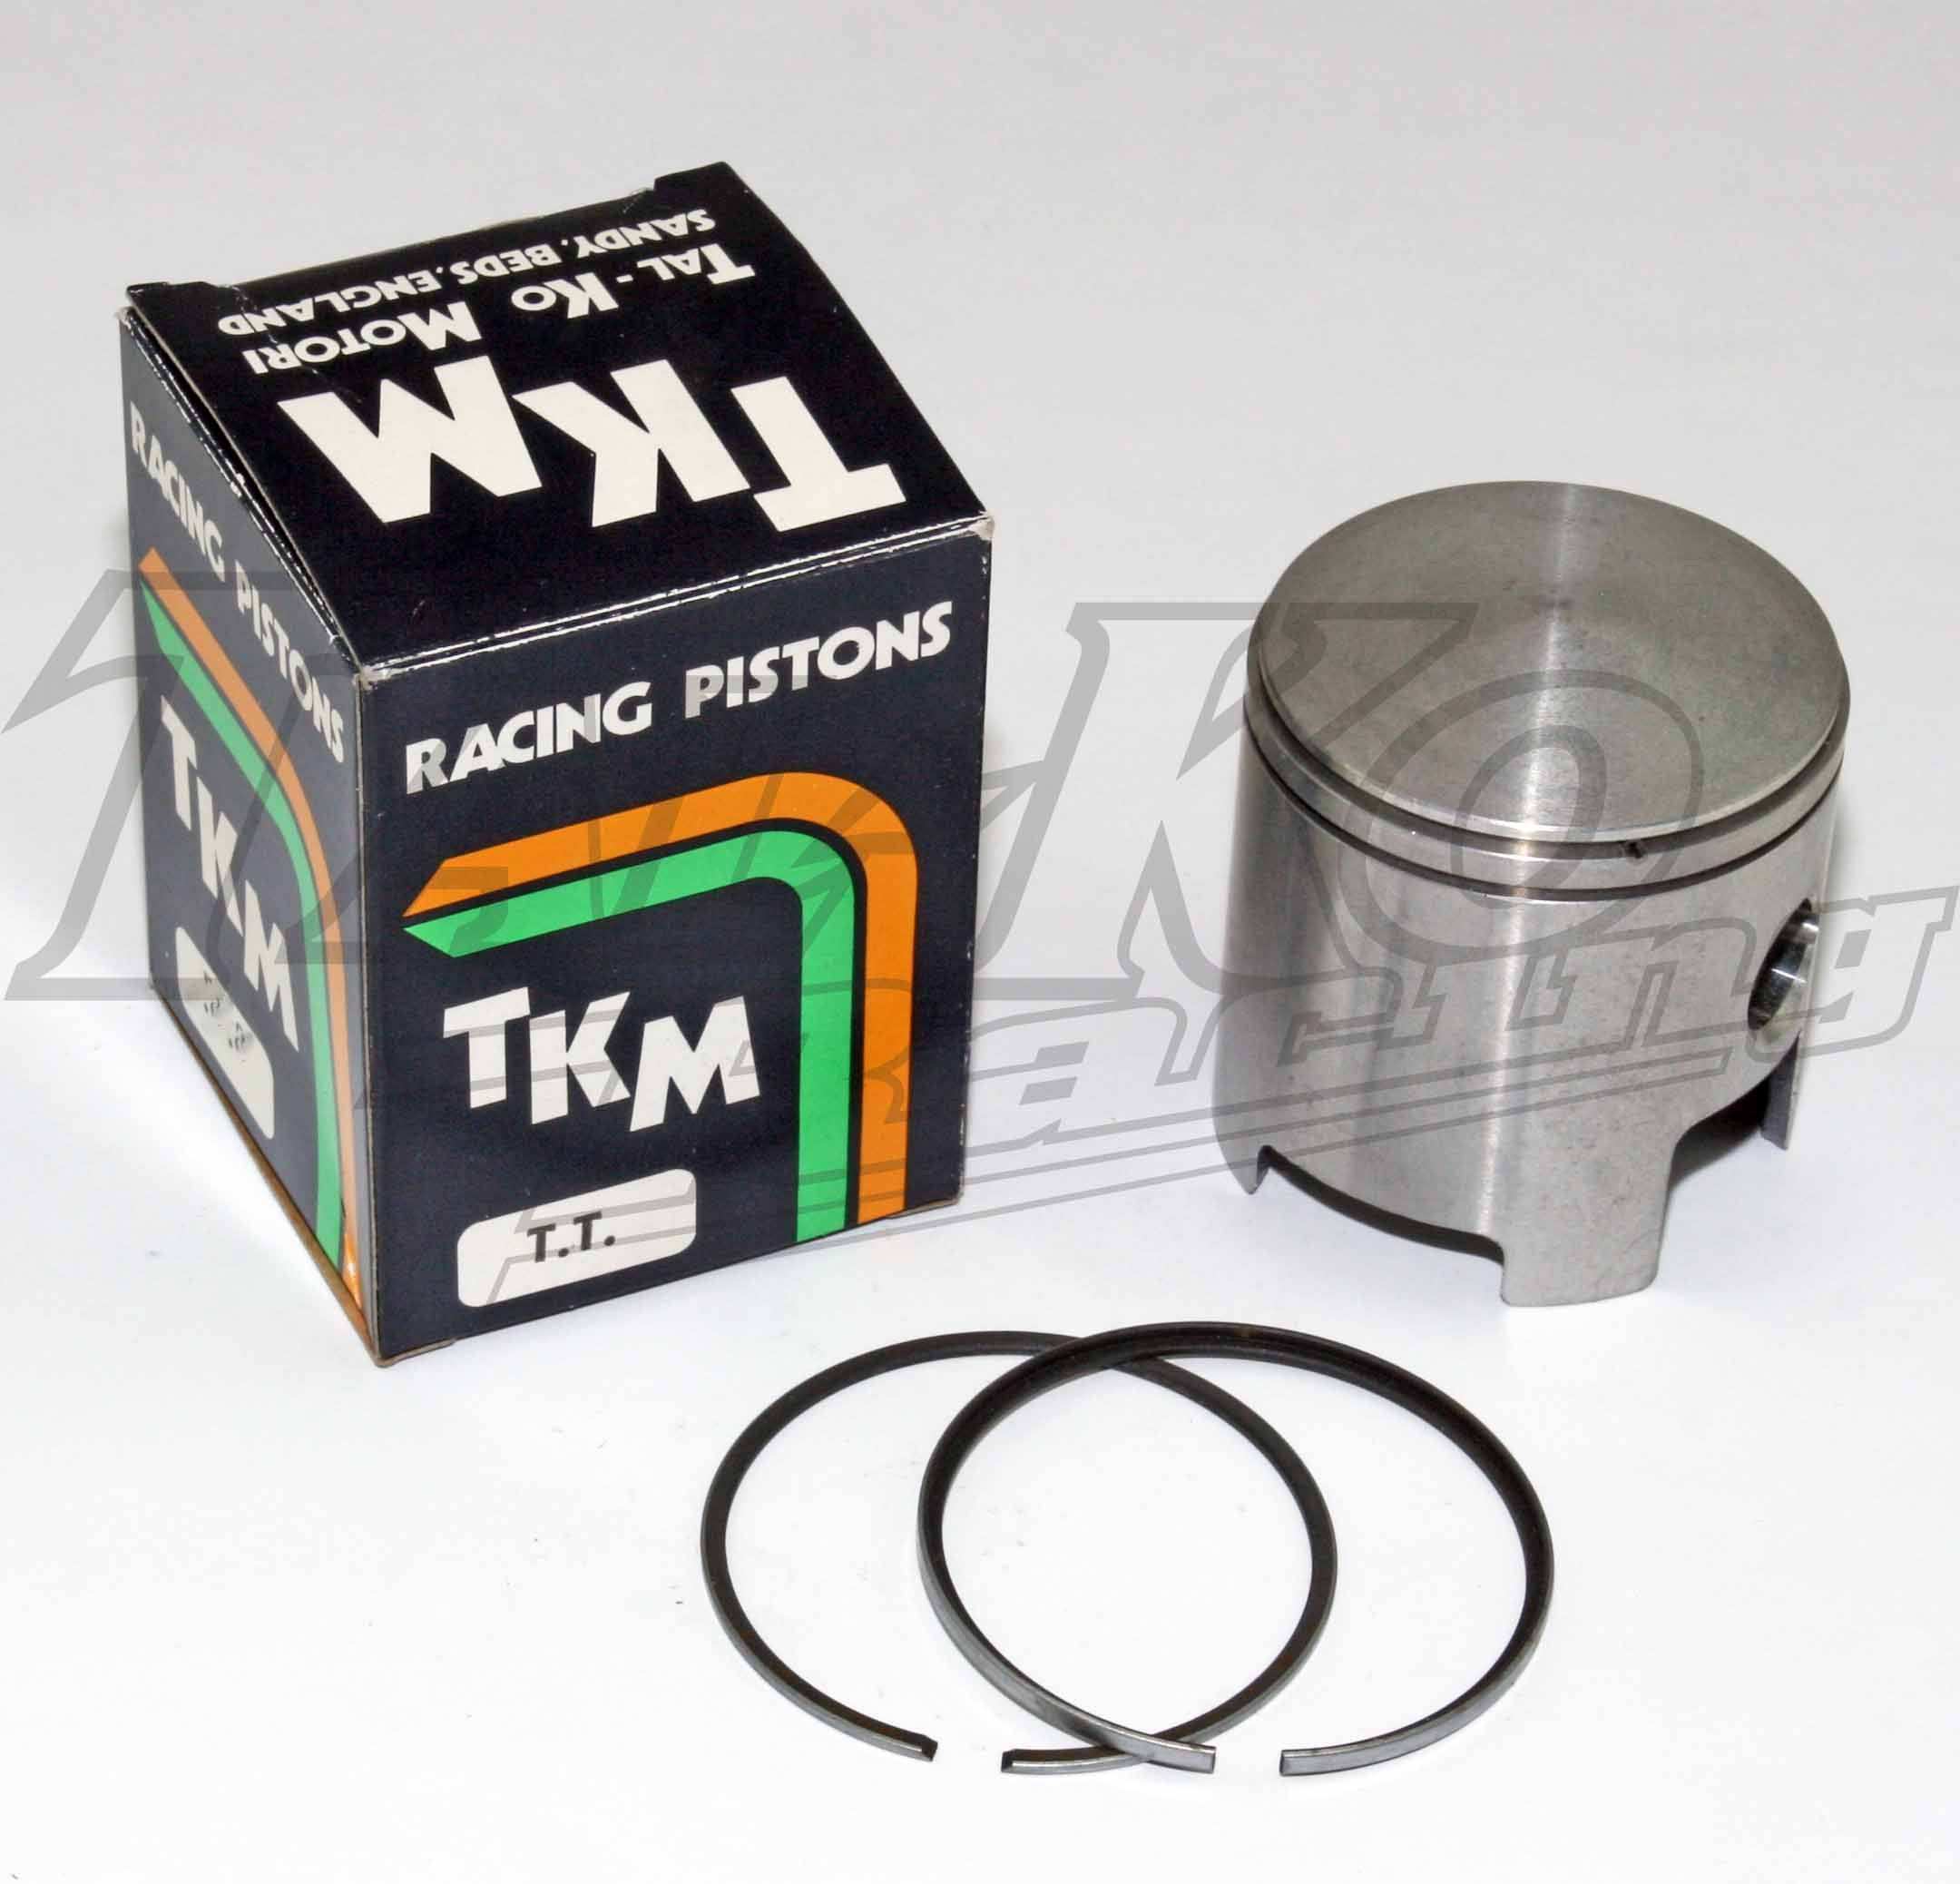 TKM TT PISTON + TWIN RING SET 55.10mm